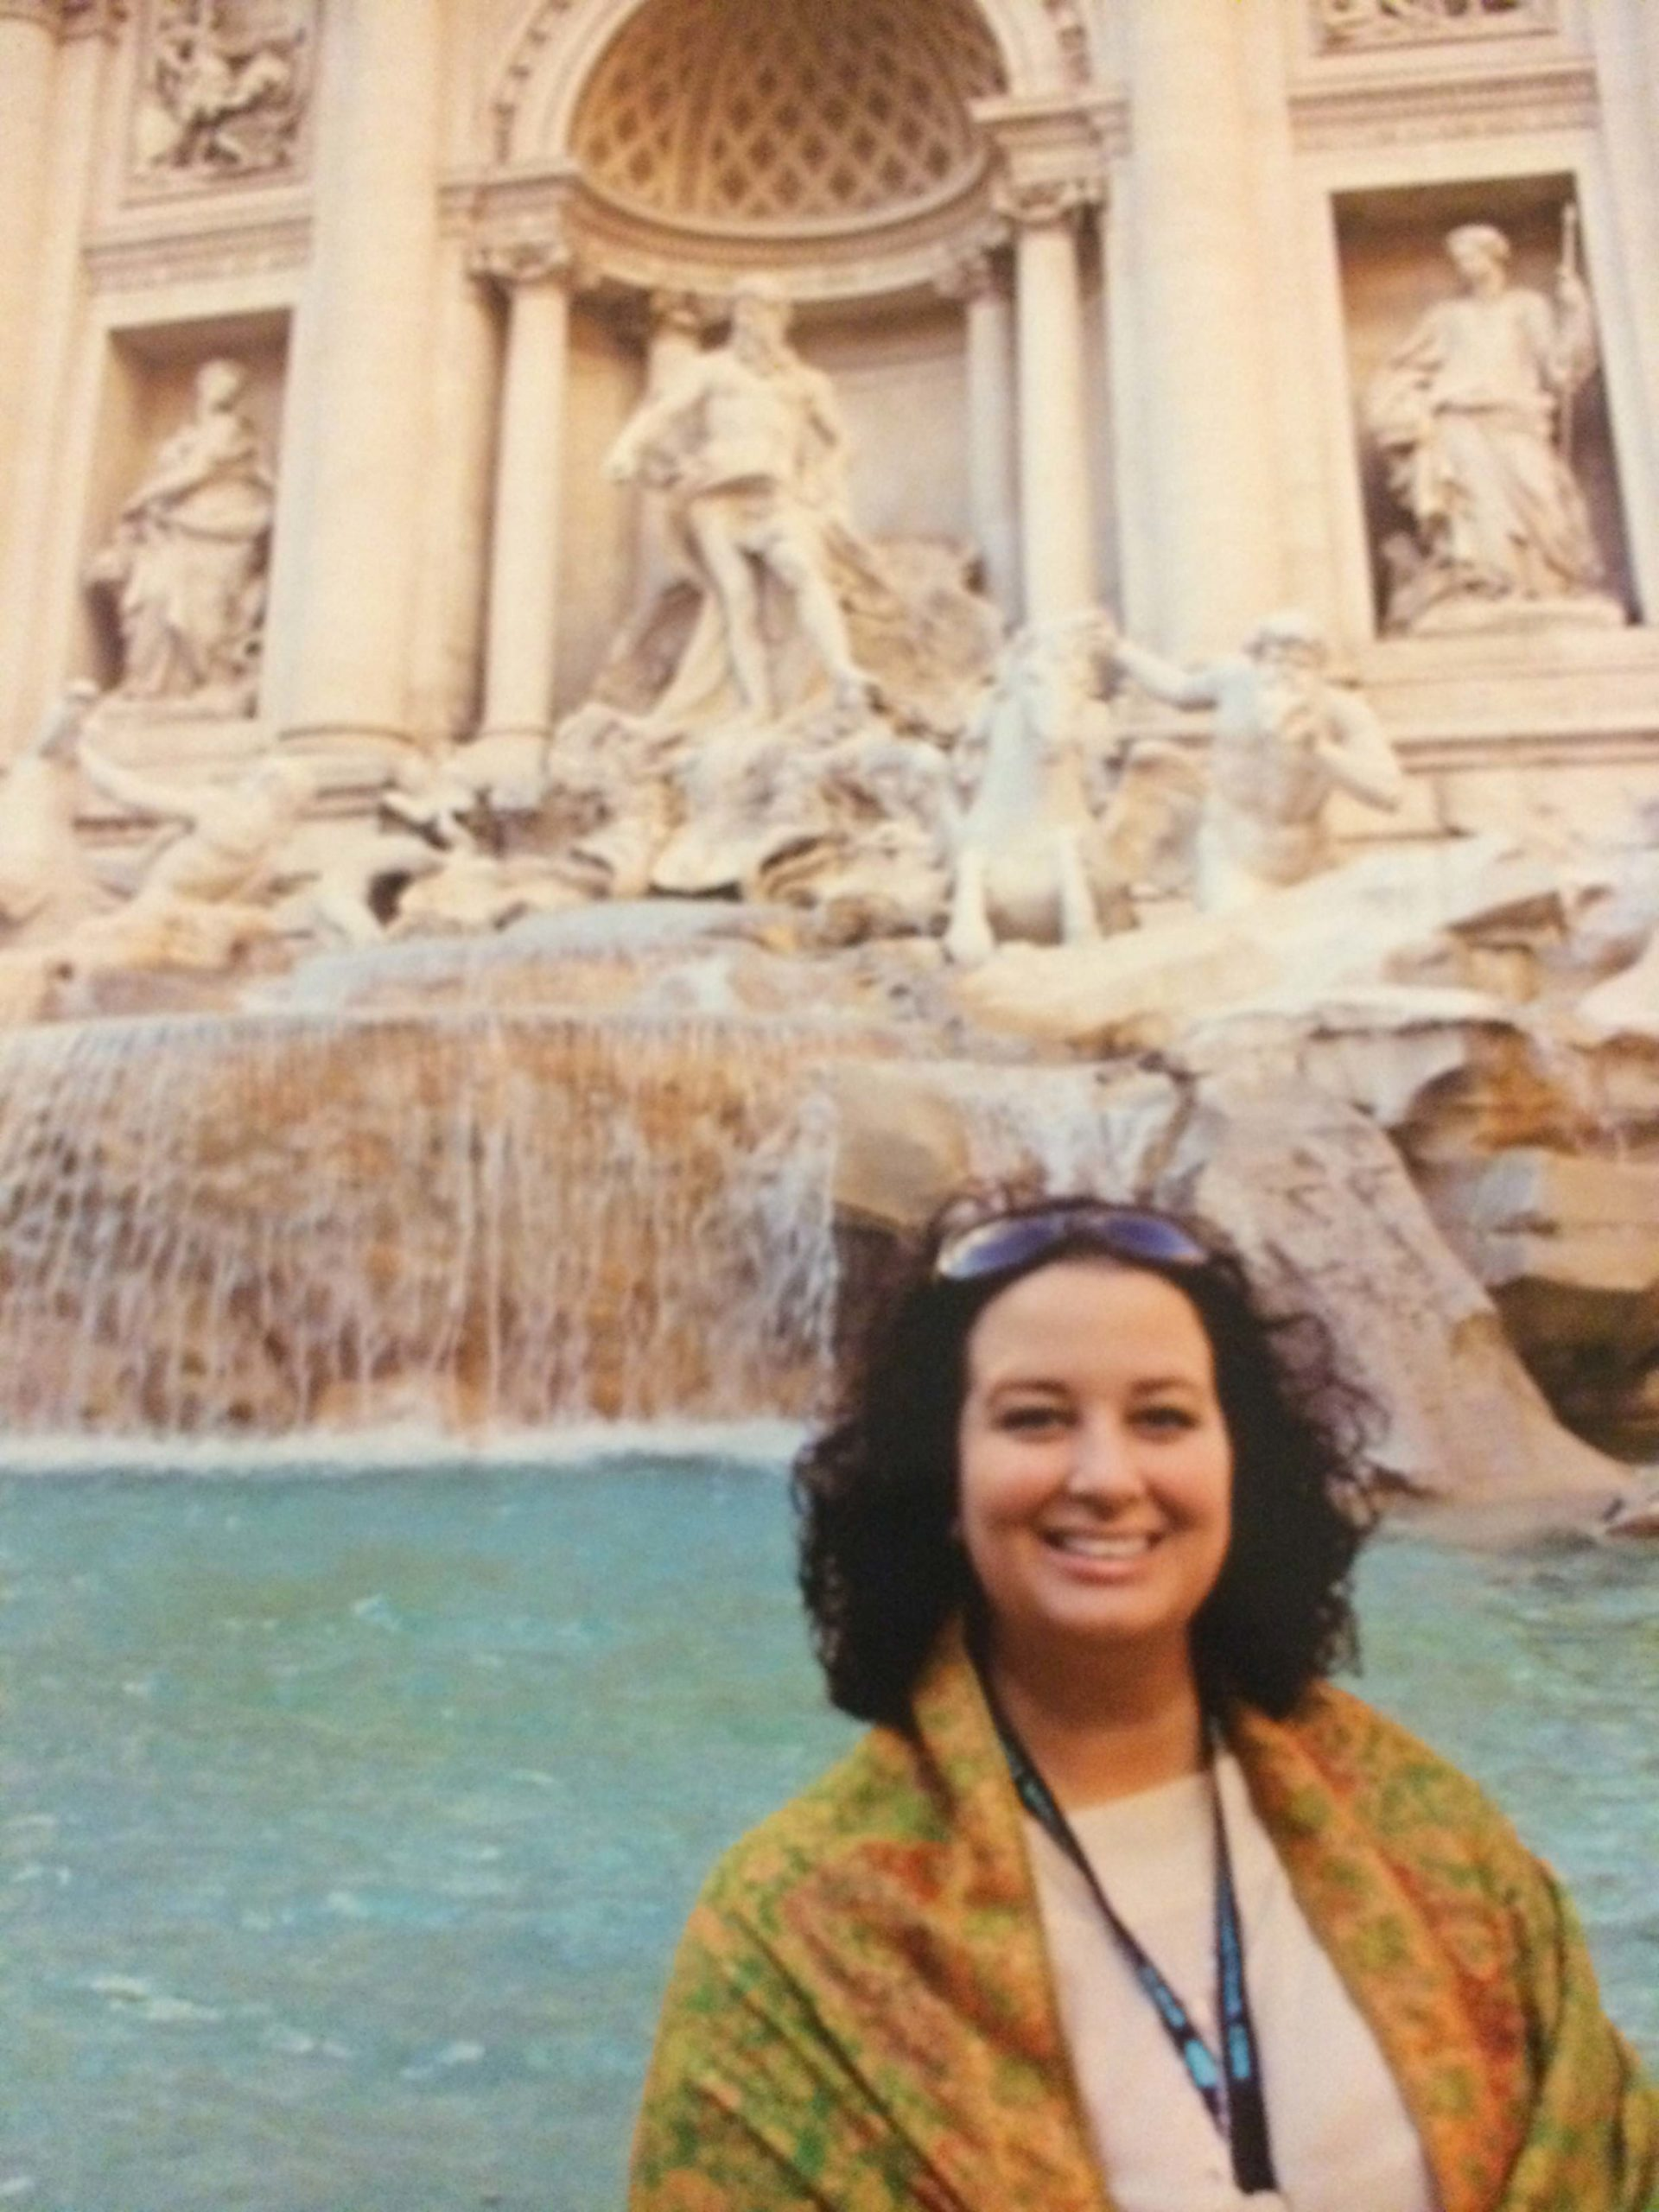 I made too many wishes in the Trevi